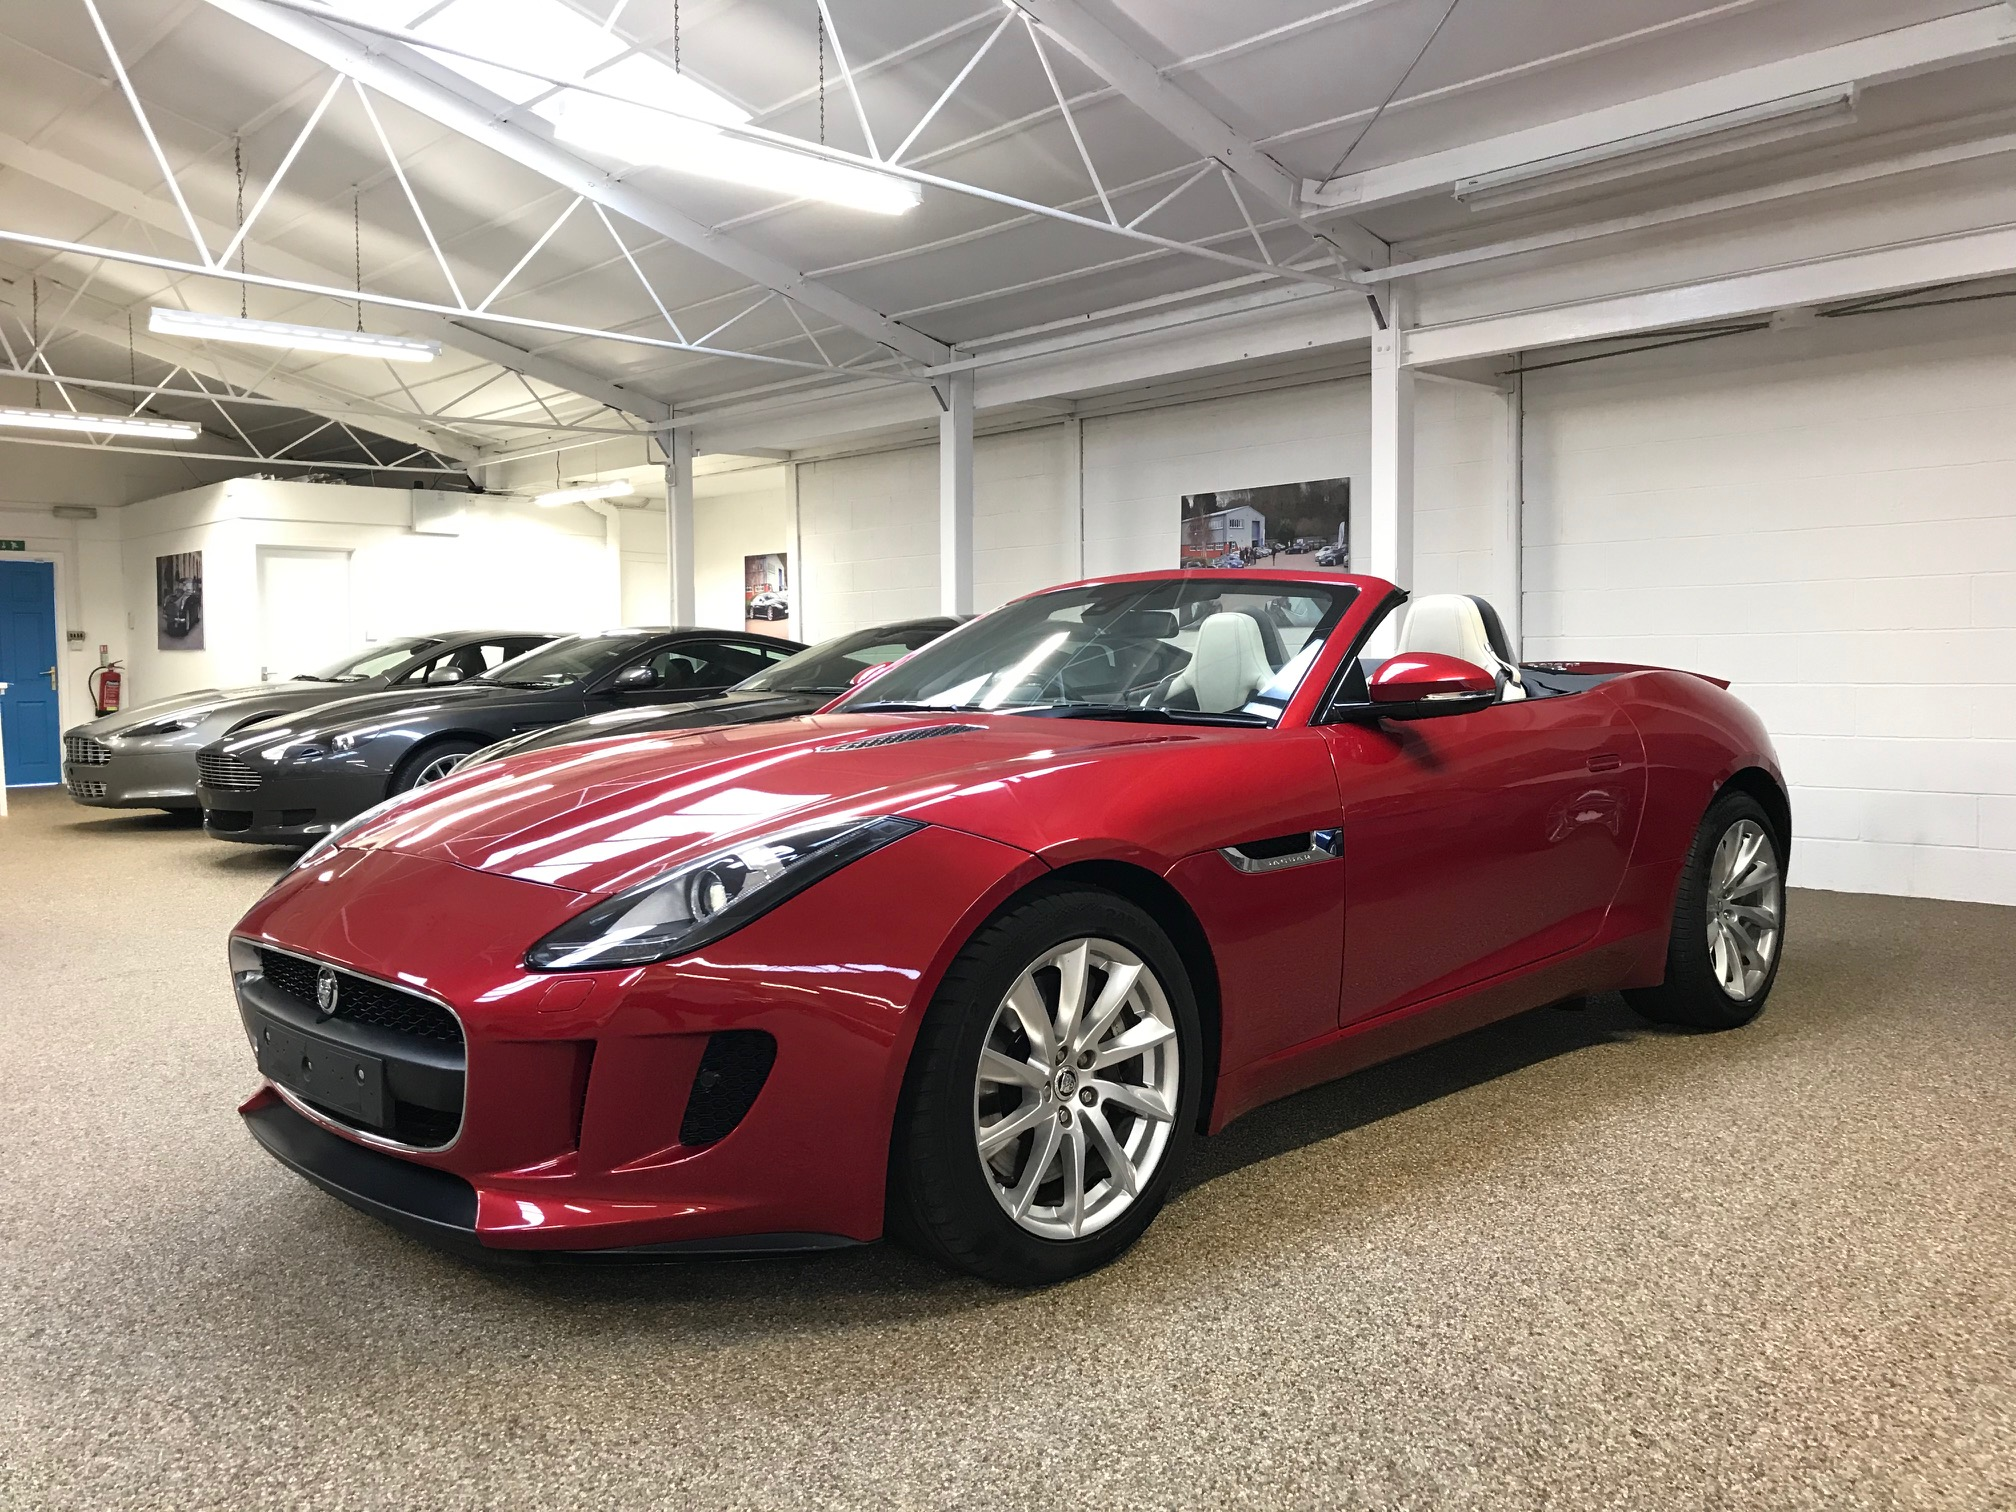 Used F Type for sale